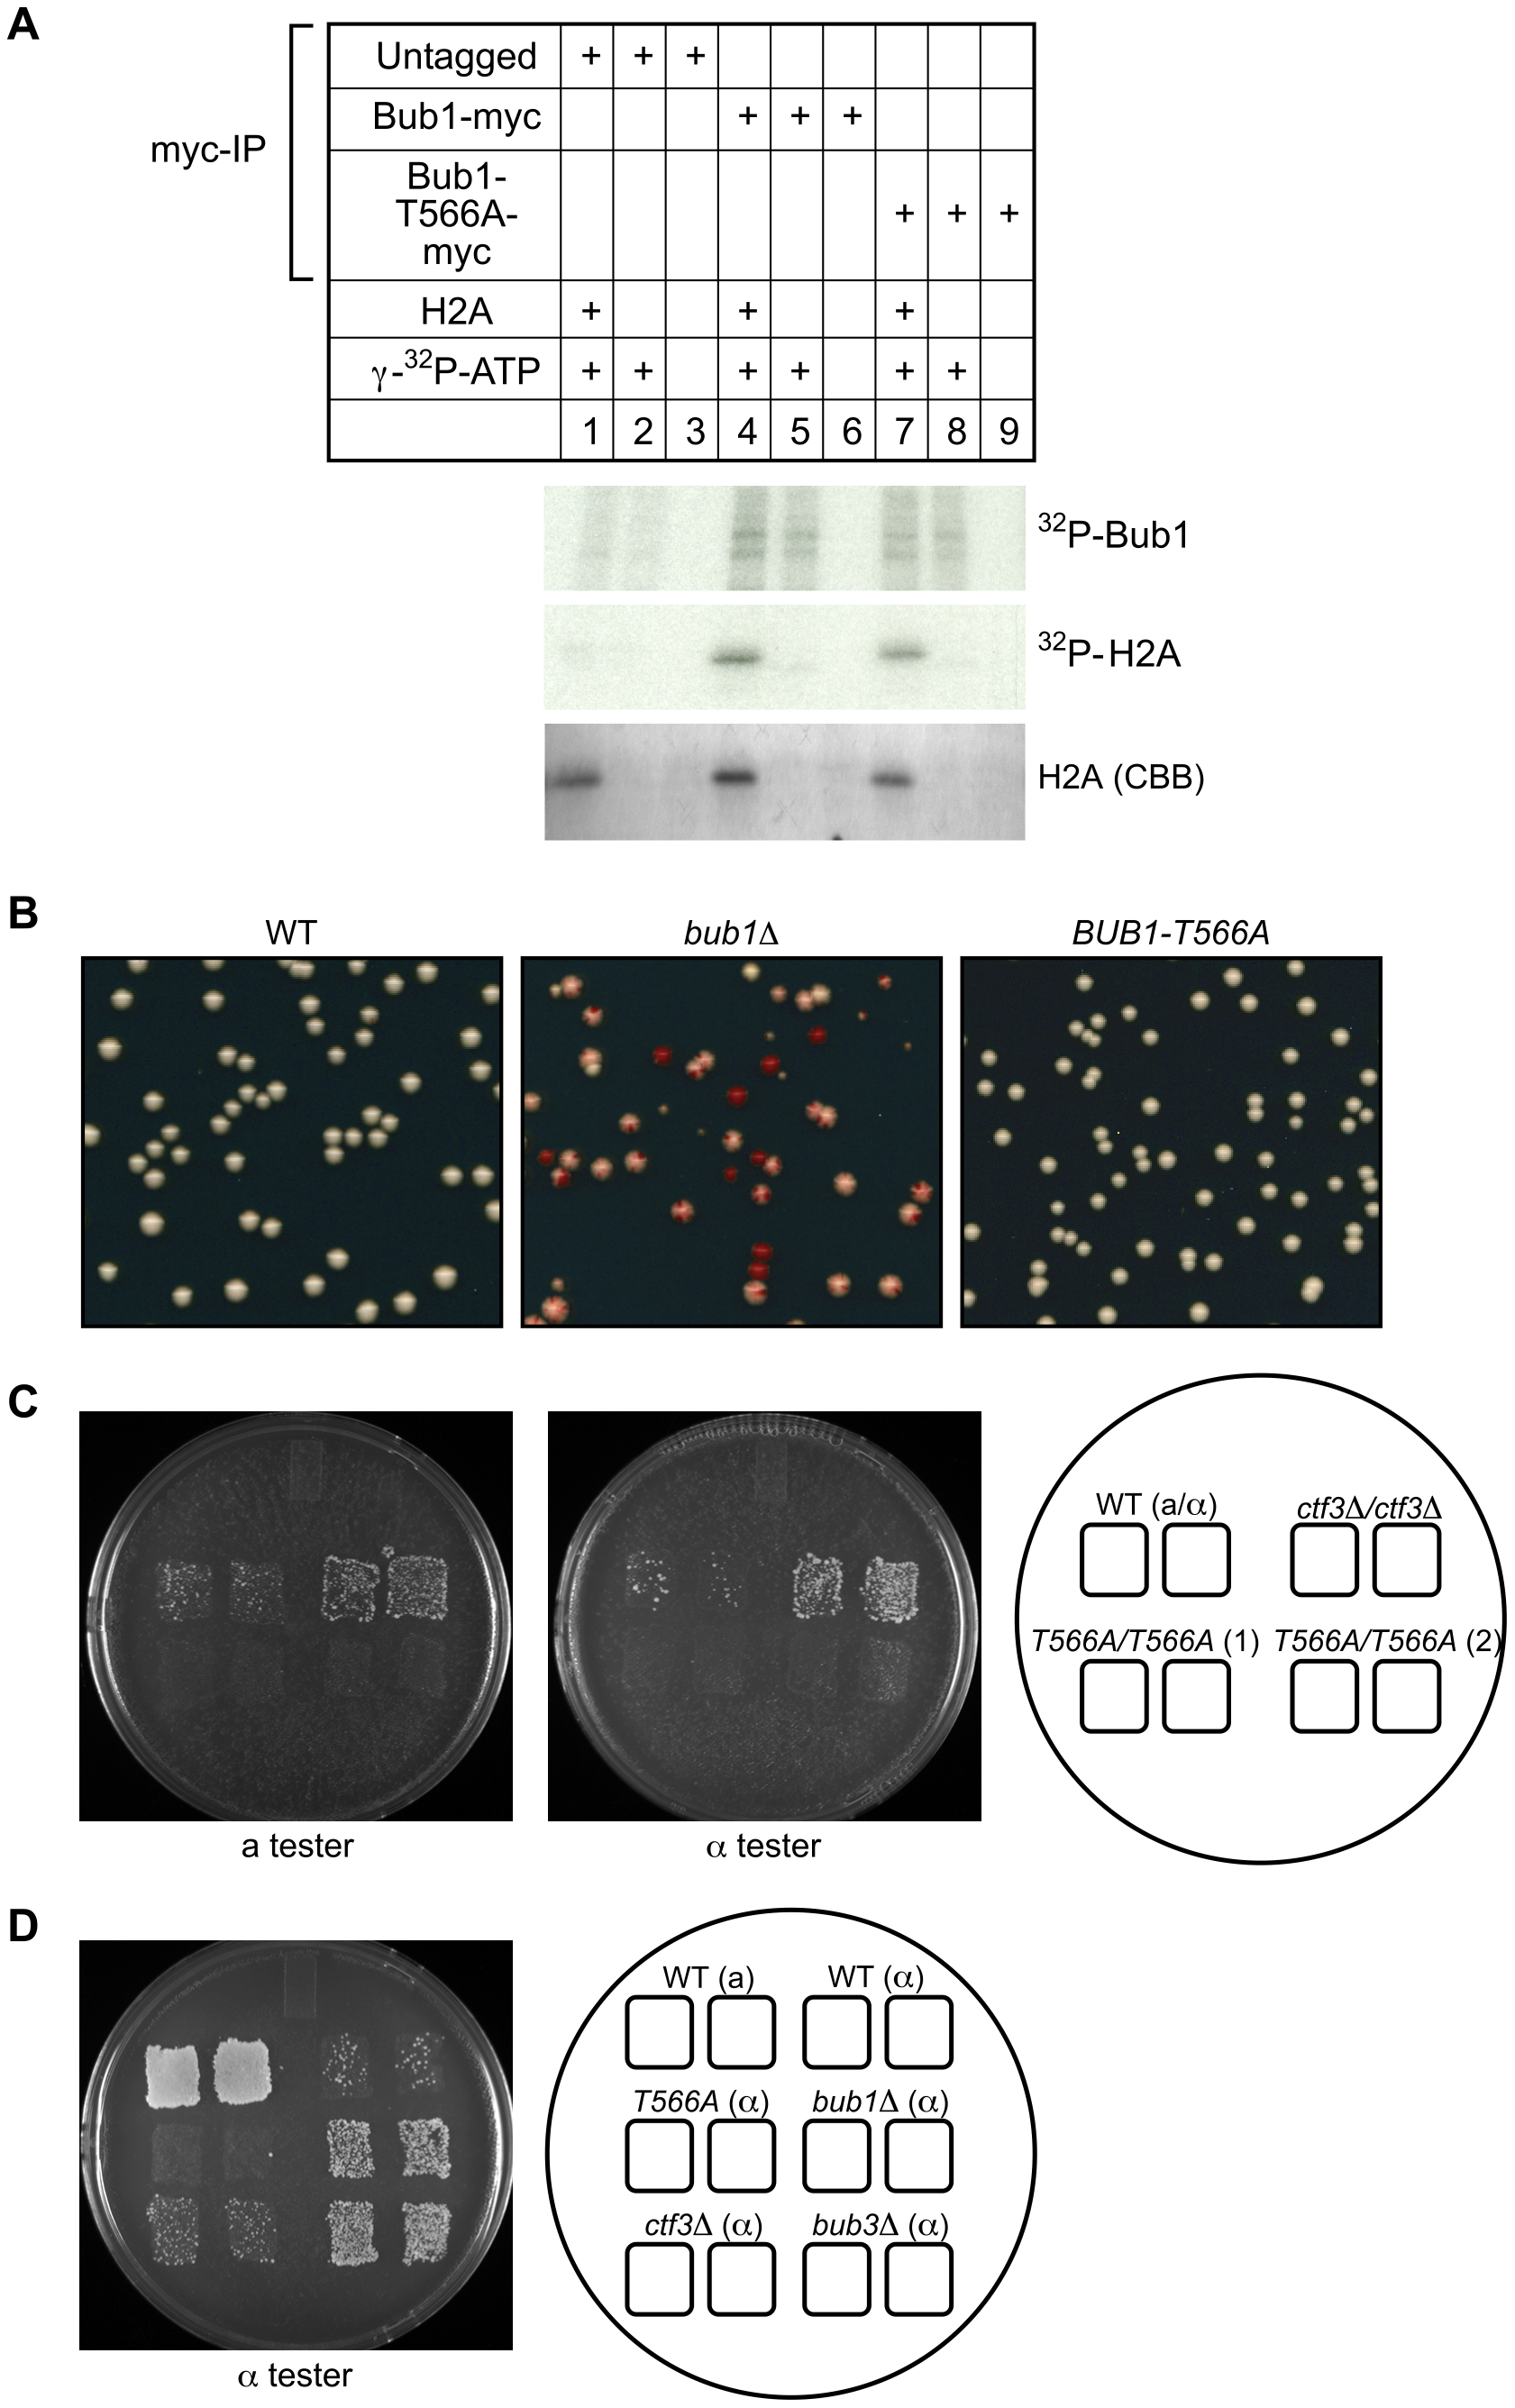 Bub1-T566A mutant has intact kinase activity or kinetochore function.